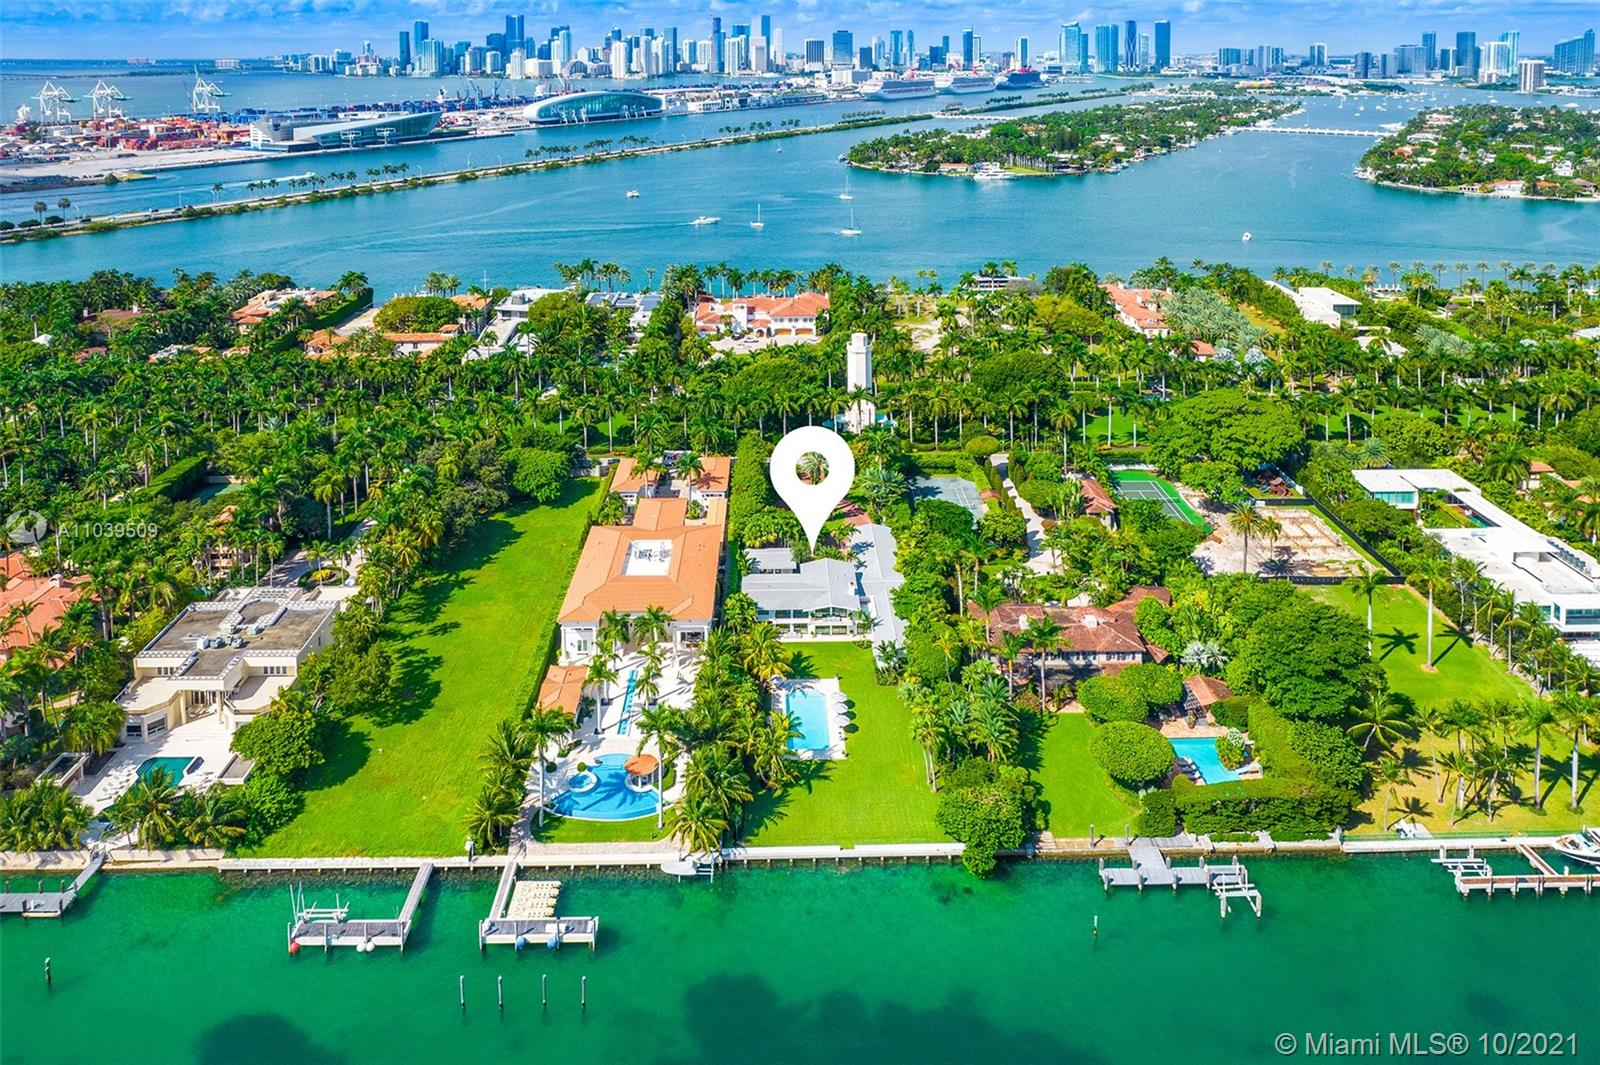 Located on exclusive, guard-gated Star Island, this fully re-imaged and rebuilt Miami Modern house by Todd Michael Glazer occupies an impressive 40,000 sf lot with dockage to accommodate up to 90' yacht only minutes from Miami Beach Marina and open water to the ocean. This 9 BR/9 +1 BA includes separate guest house with kitchen and spacious second floor master suite with balcony overlooking the huge outdoor entertainment space.  Lushly landscaped grounds feature tropical foliage, large resort size pool and automatic gate for privacy and security.  This estate is truly a one of a kind location with access to endless restaurants and shopping of South Beach, Brickell and the new Design District. Additional 2000 sf added in the new renovation for adjusted 9945 sf as per owner.